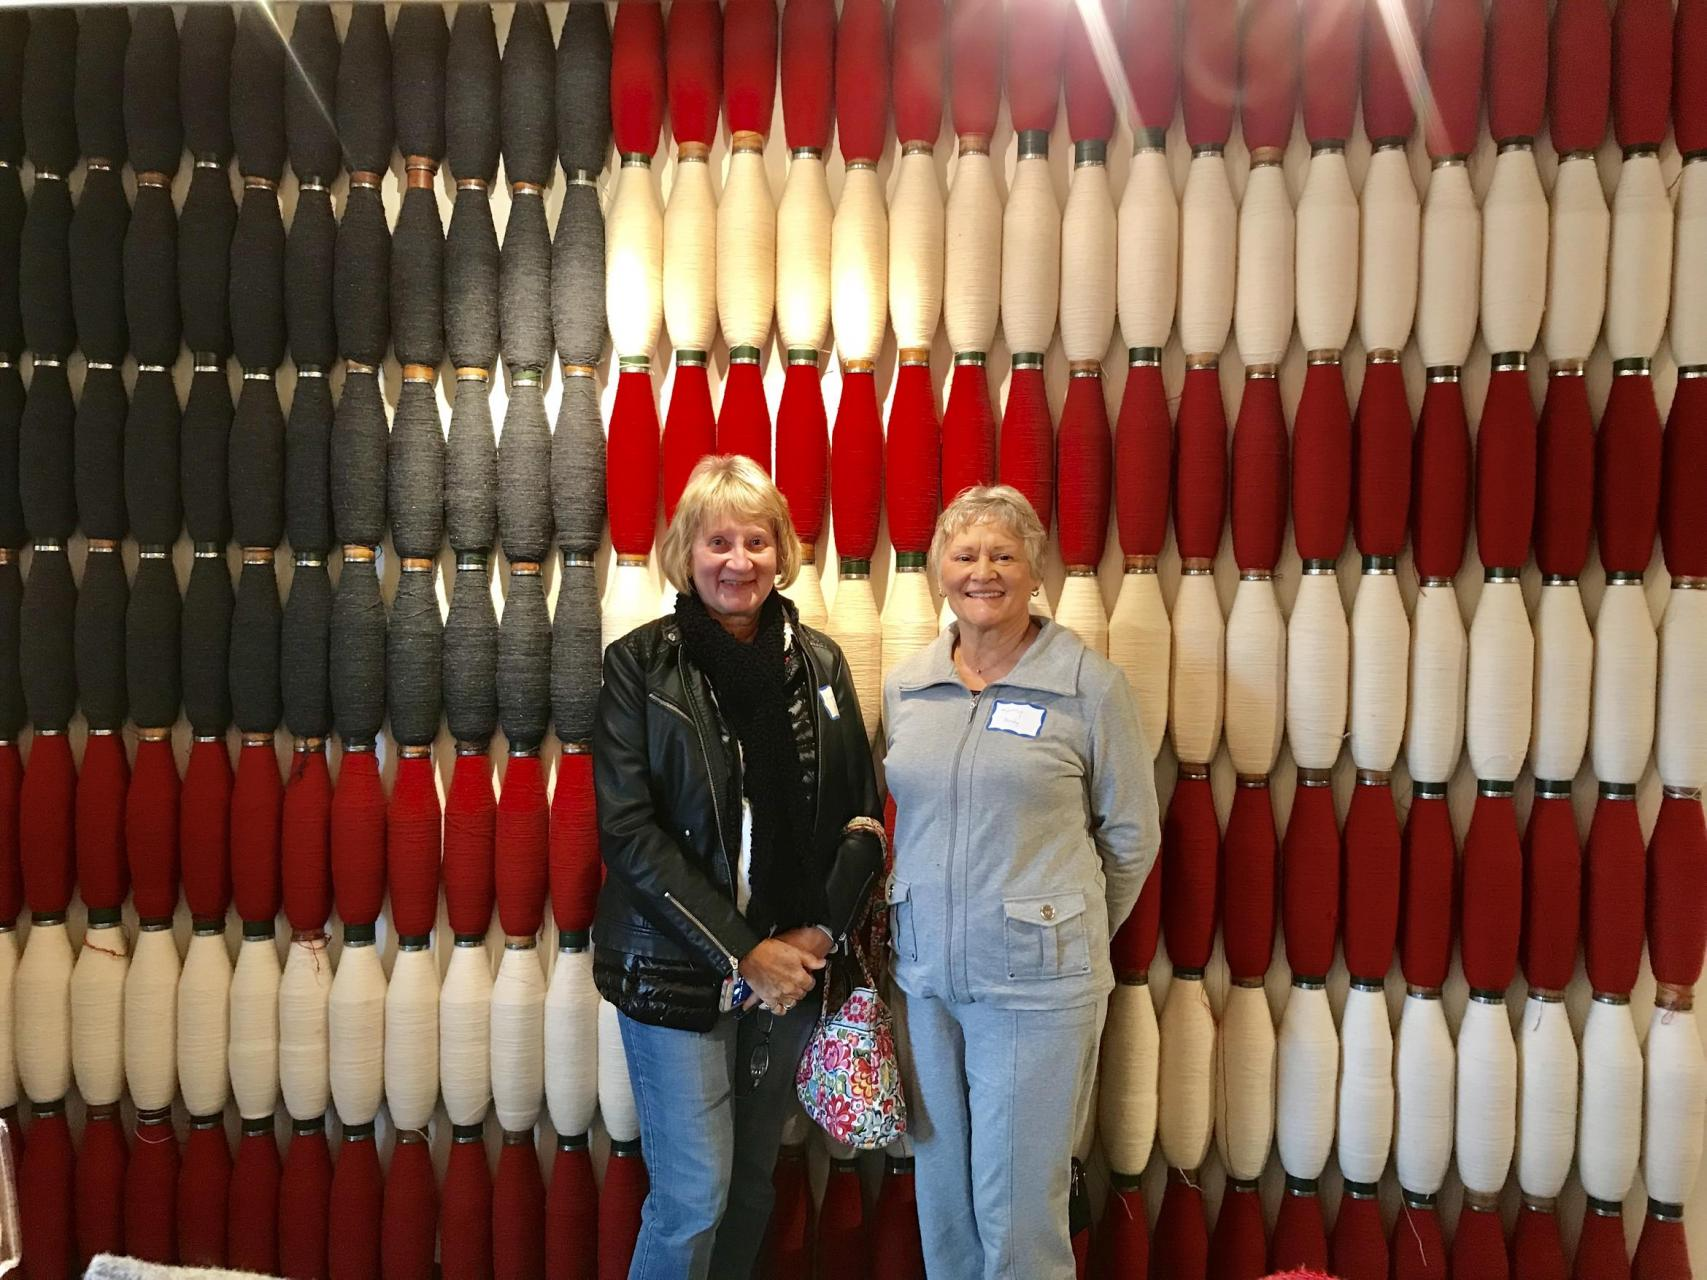 Two women standing in front of spools of yarn.